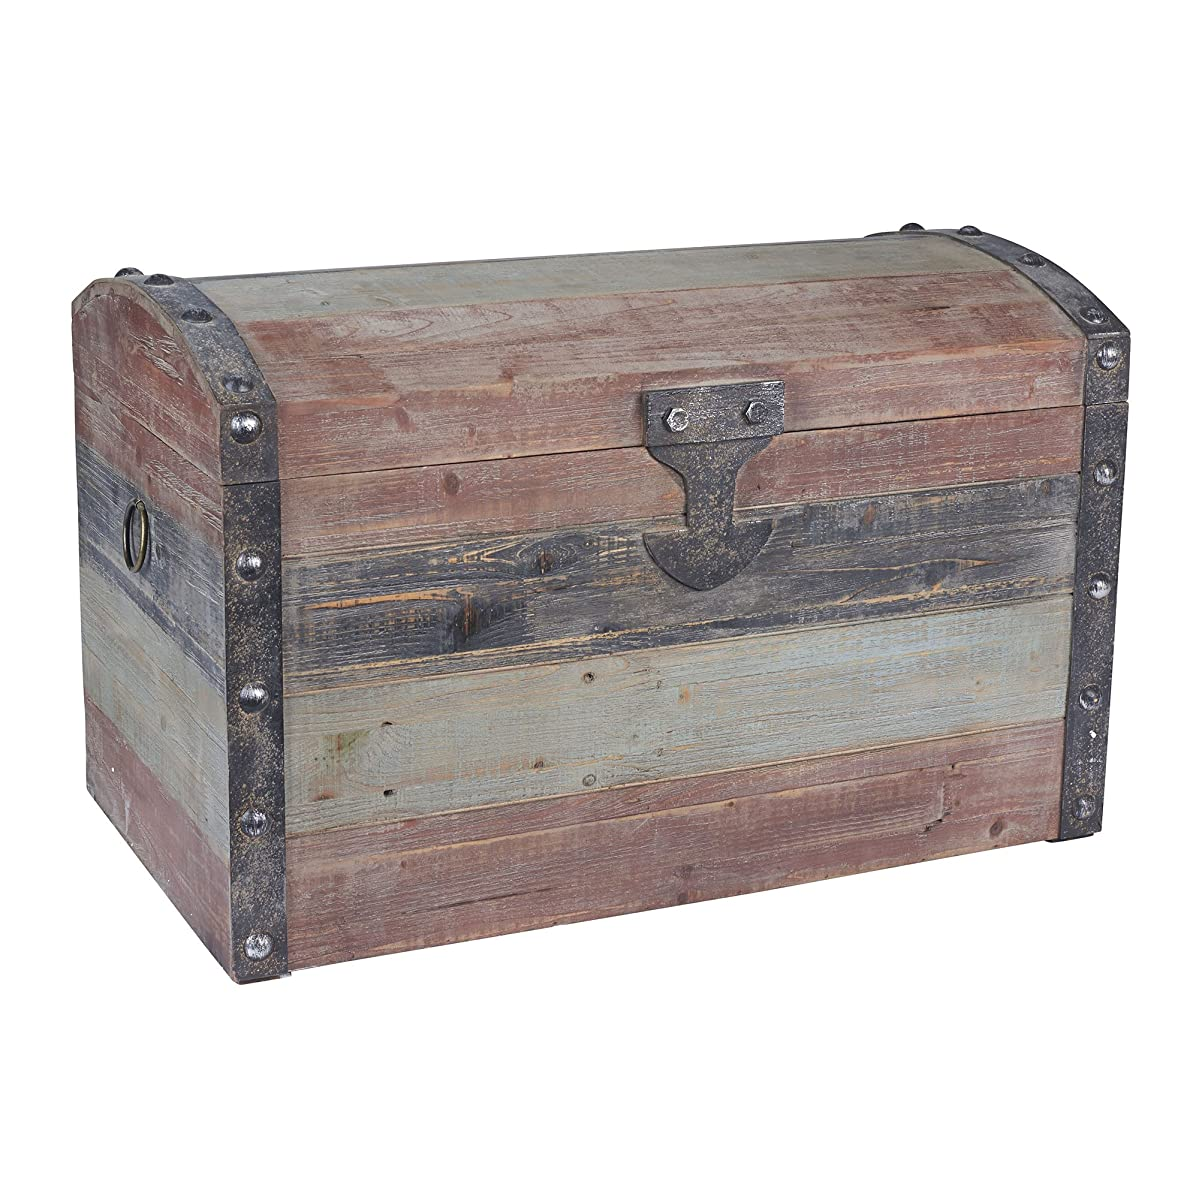 Household Essentials Stripped Weathered Wooden Storage Trunk, Large